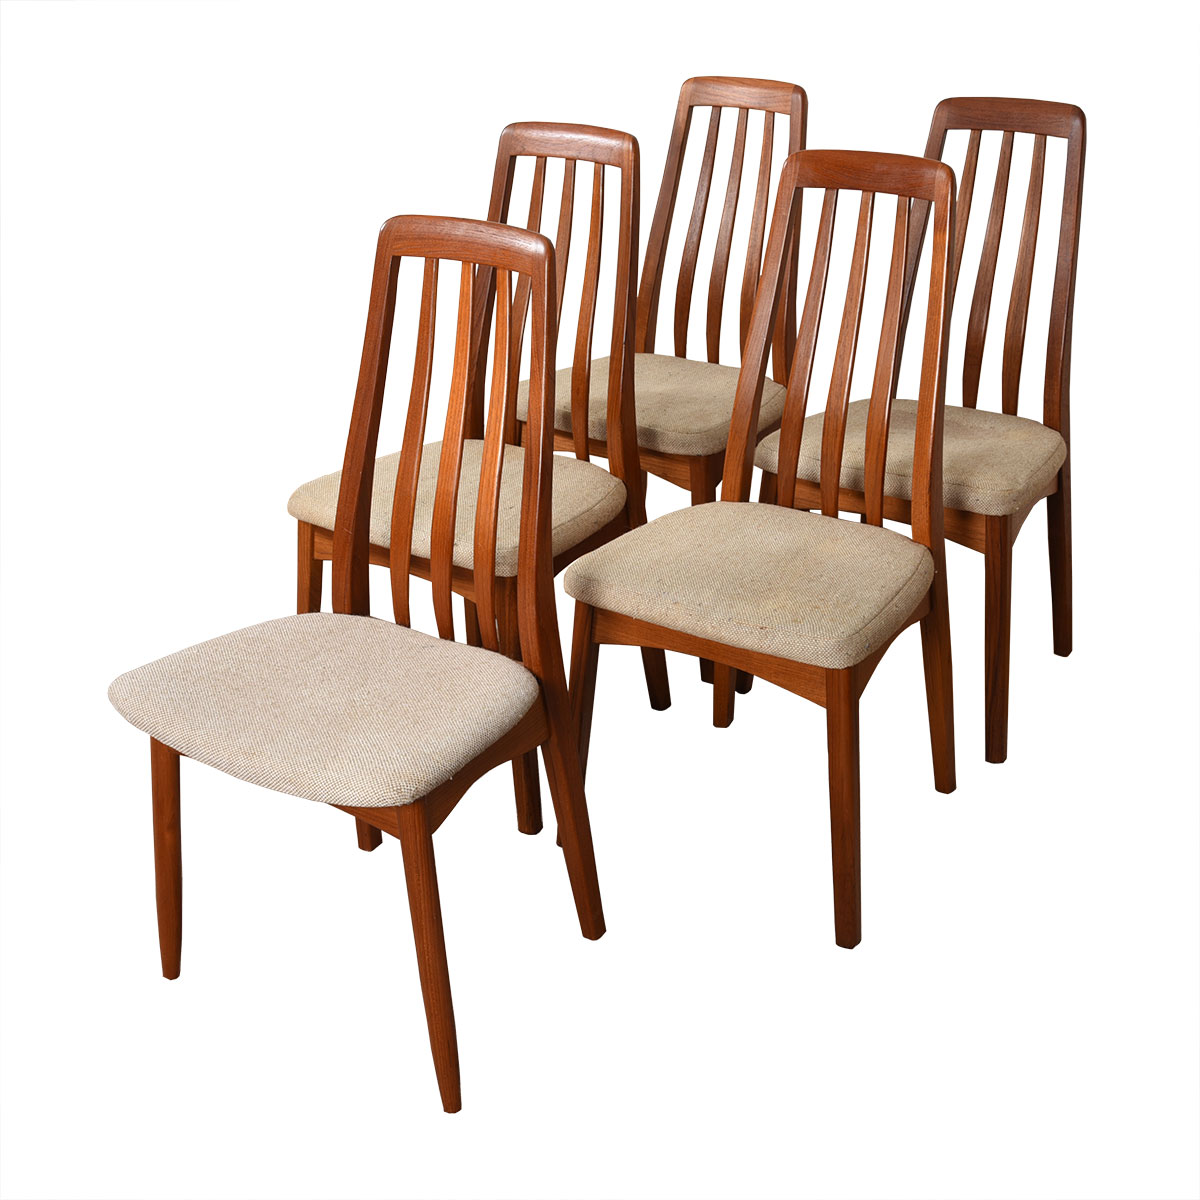 Danish Modern Teak Set of 1-2-3 Tall Slatted-Back Dining Side Chairs